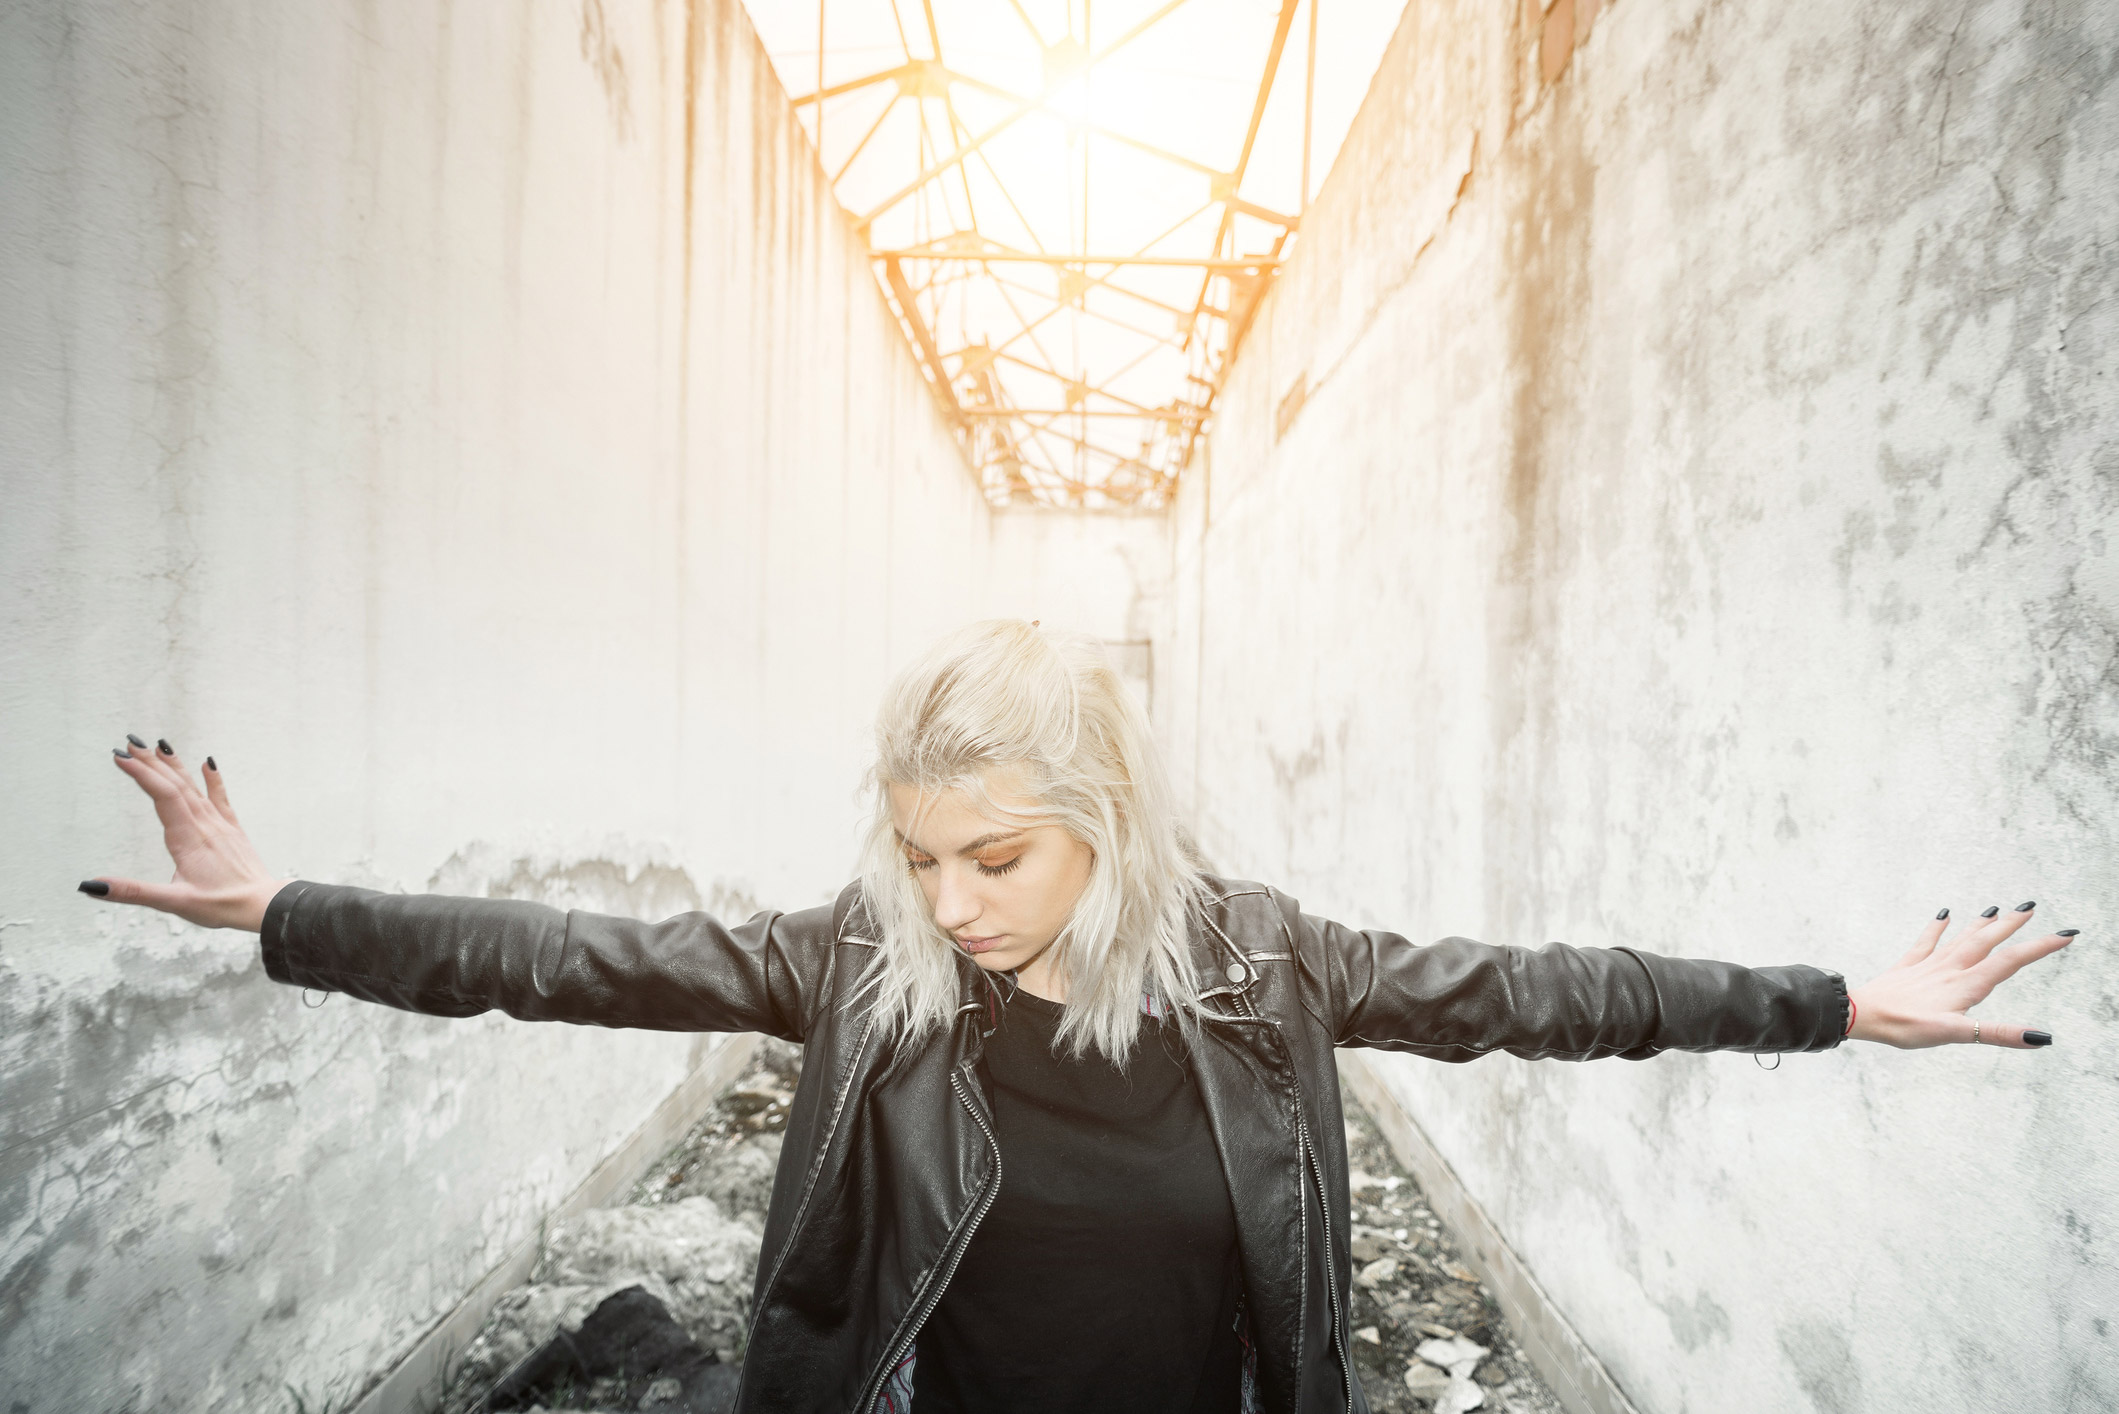 A young, white haired girl in a black leather jacket with black fingernails has her hands out, fingers against white walls on both sides, inside a run down industrial building.